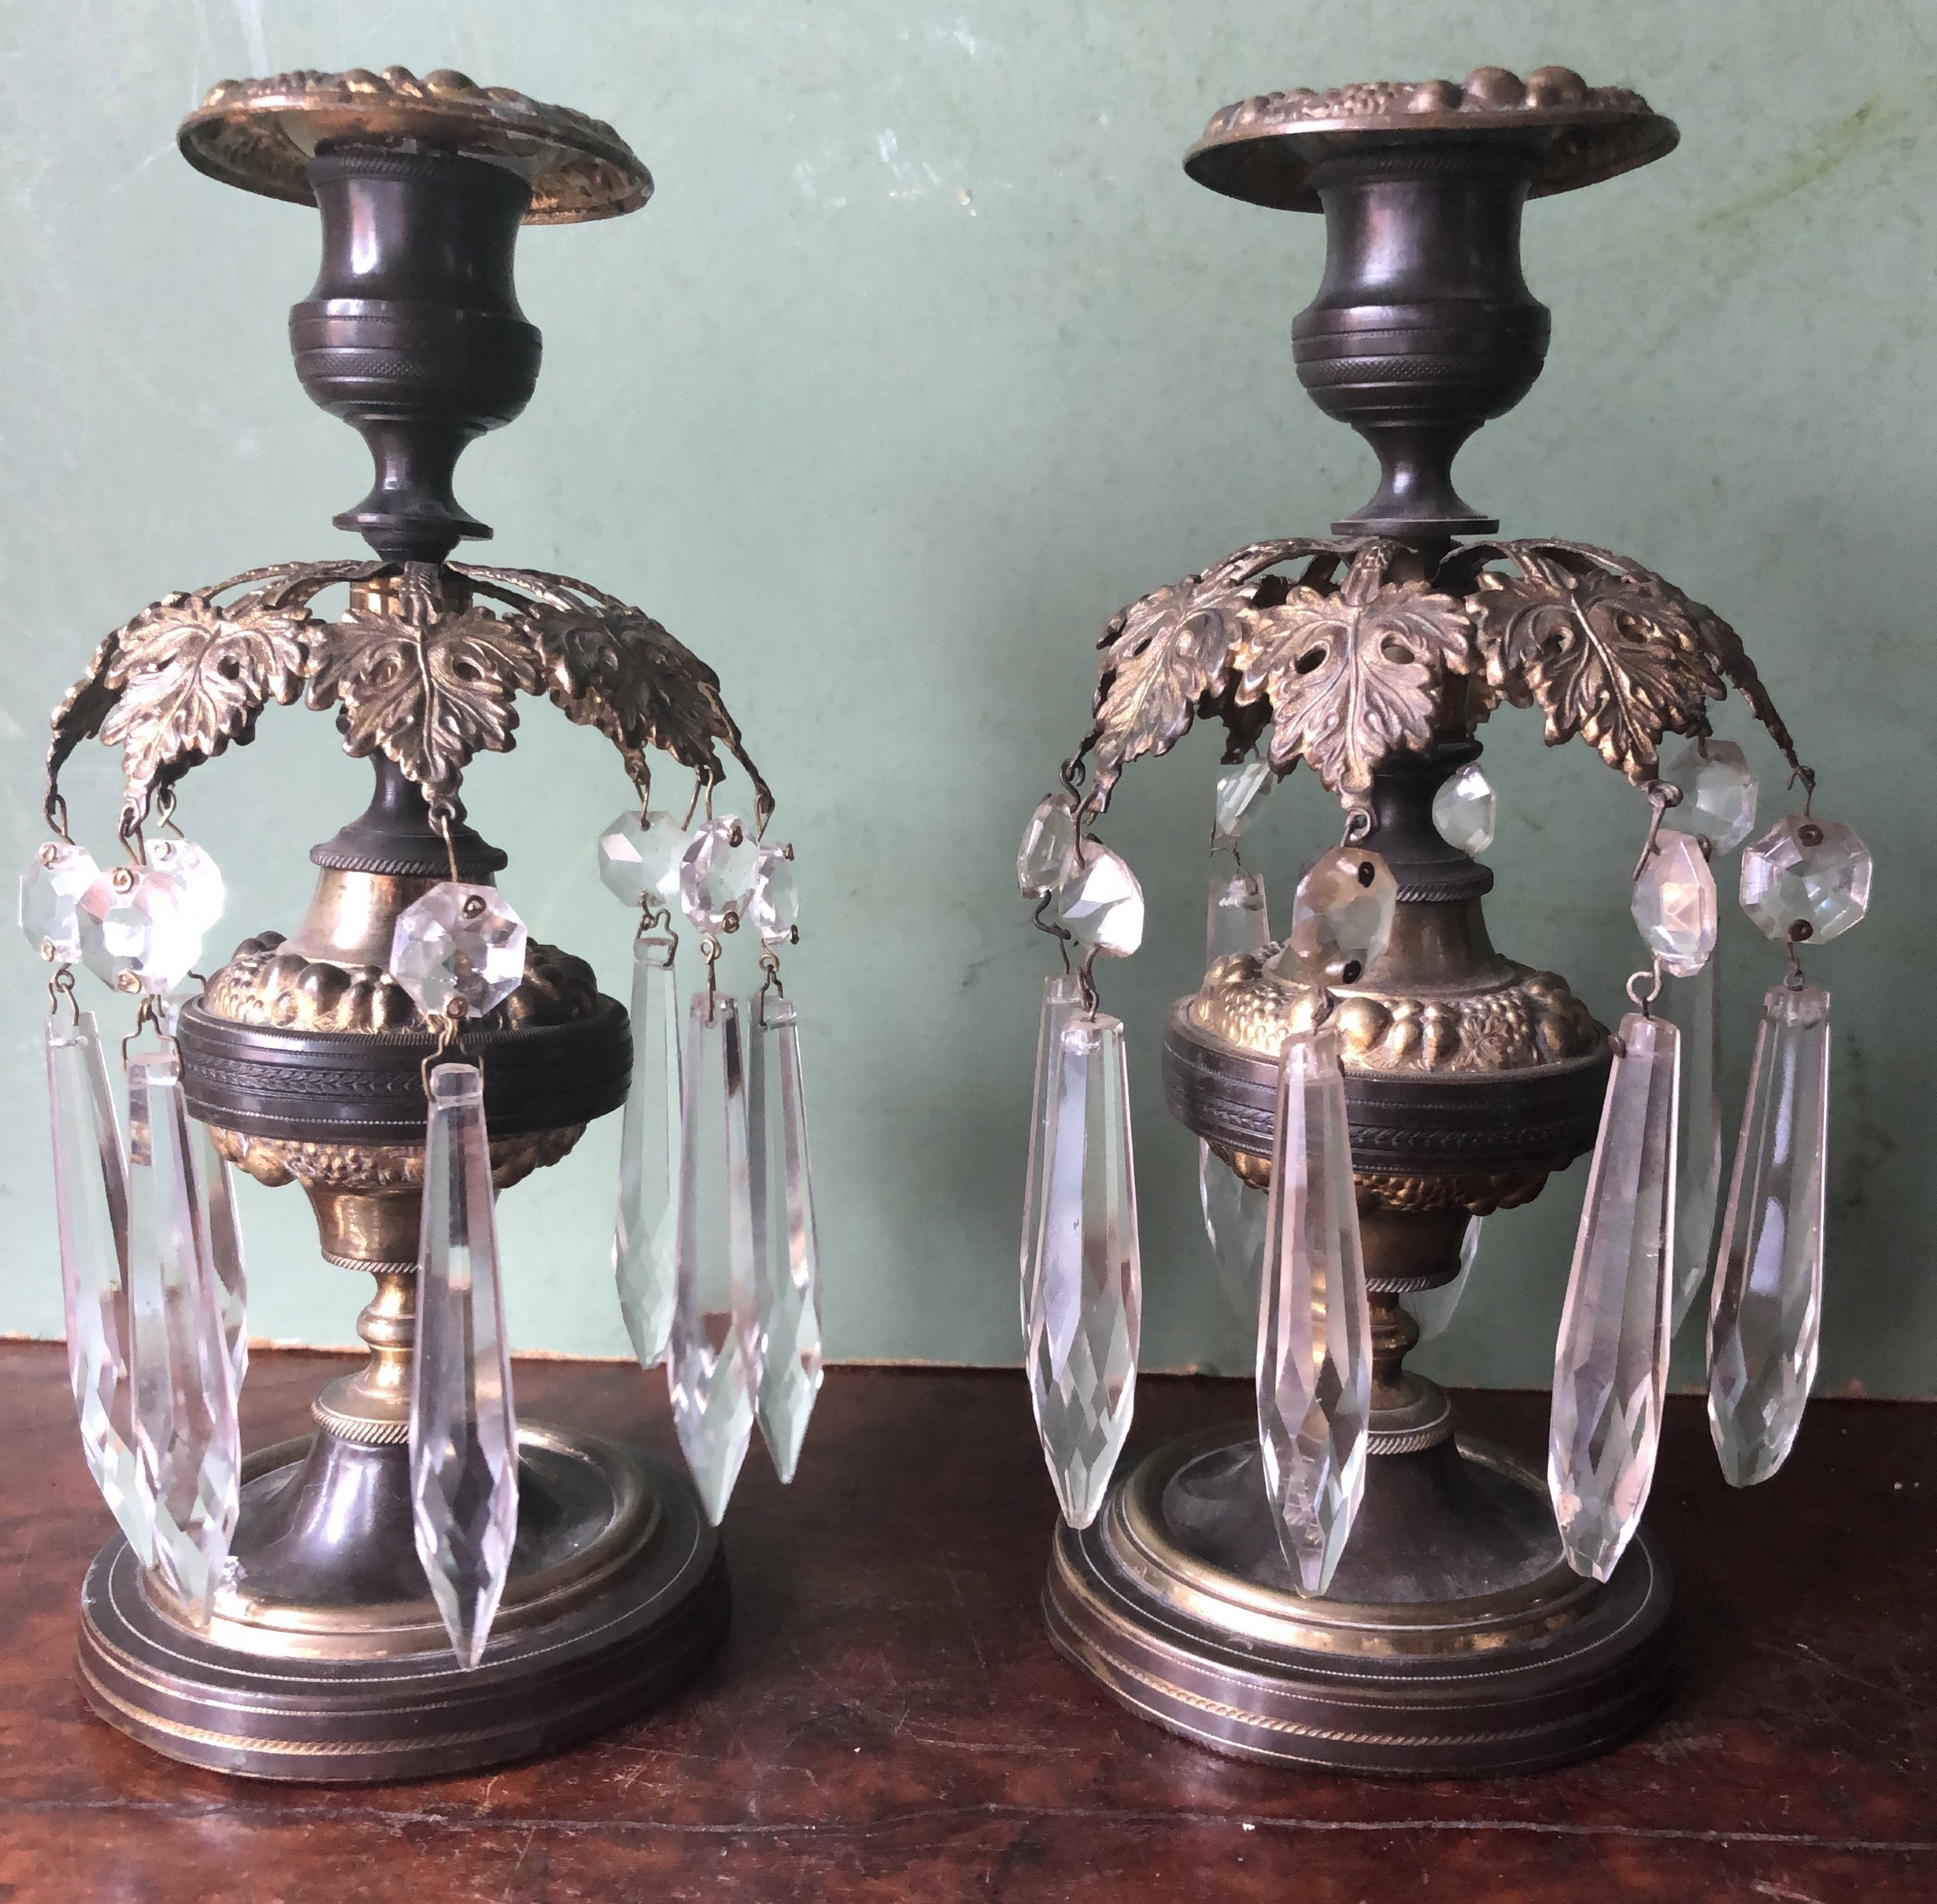 pair of early c19th regency period patinated and gilded bronze lustre candlesticks